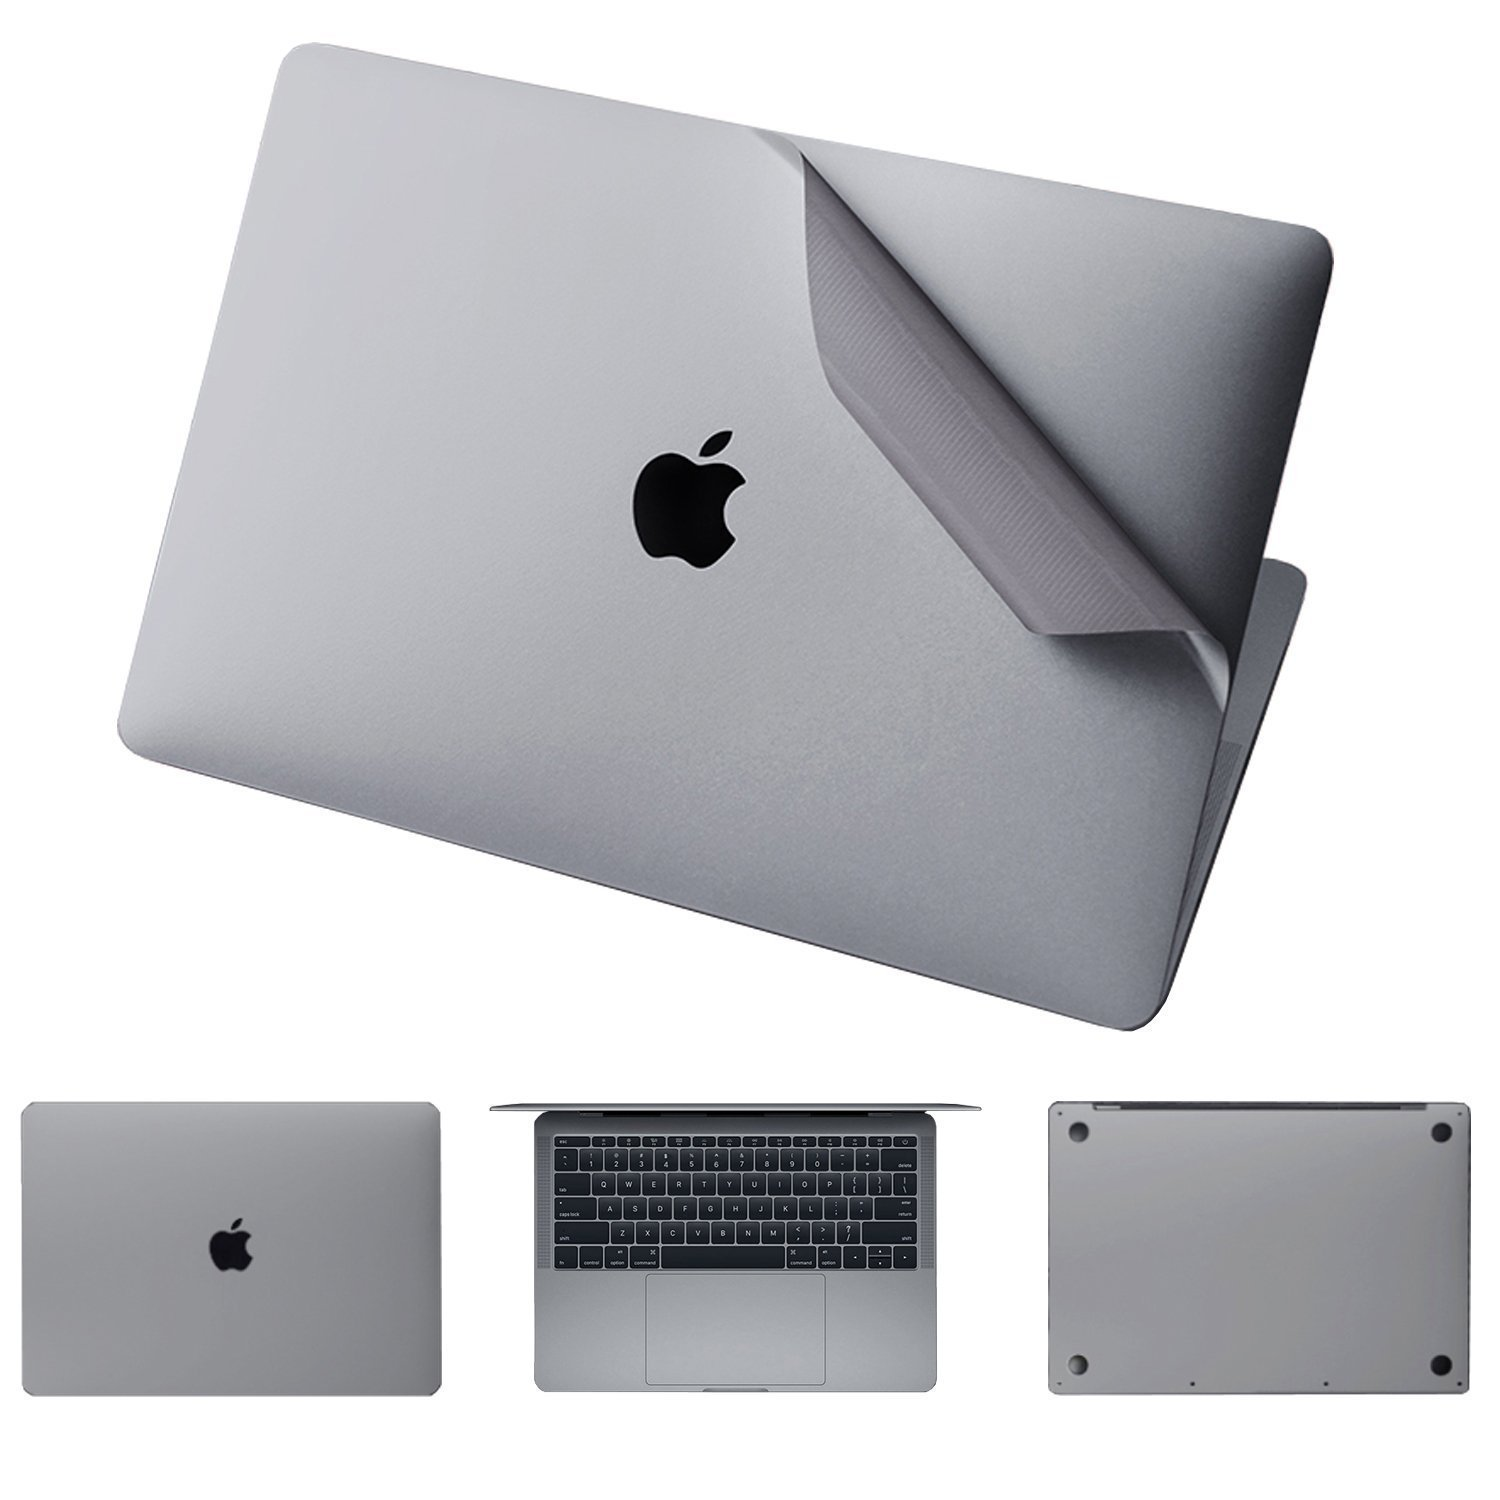 5-in-1 Full Body Cover MacBook Skin Protector Decals Sticker for Apple MacBook Pro 15.4'' with Retina Display Model A1398 - Space Gray